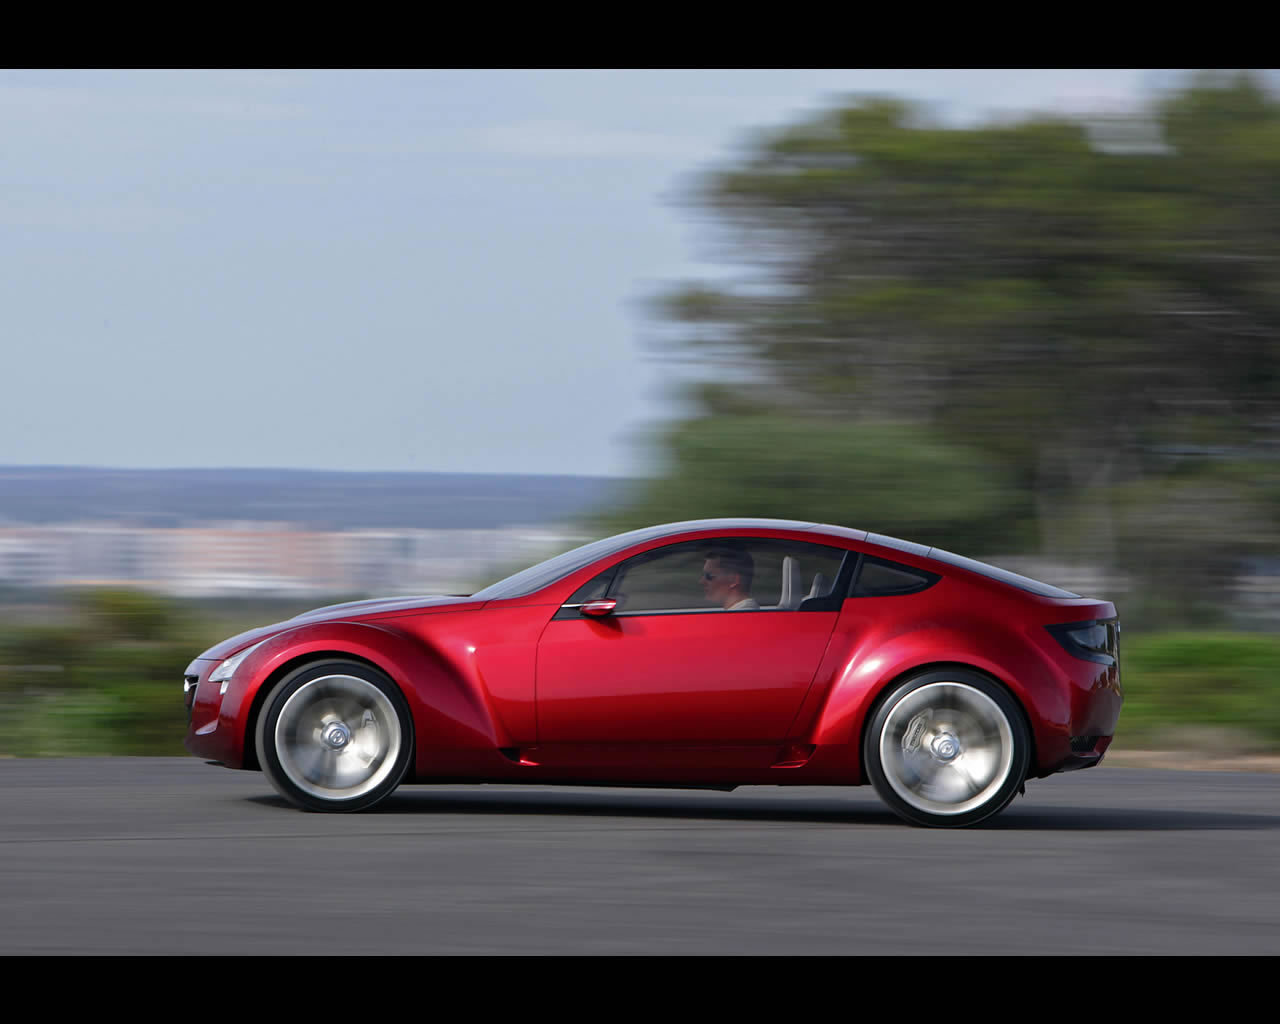 http://autoconcept-reviews.com/cars_reviews/mazda/mazda-kabura/wallpaper/Mazda_Kabura_2006_driving05_print.jpg